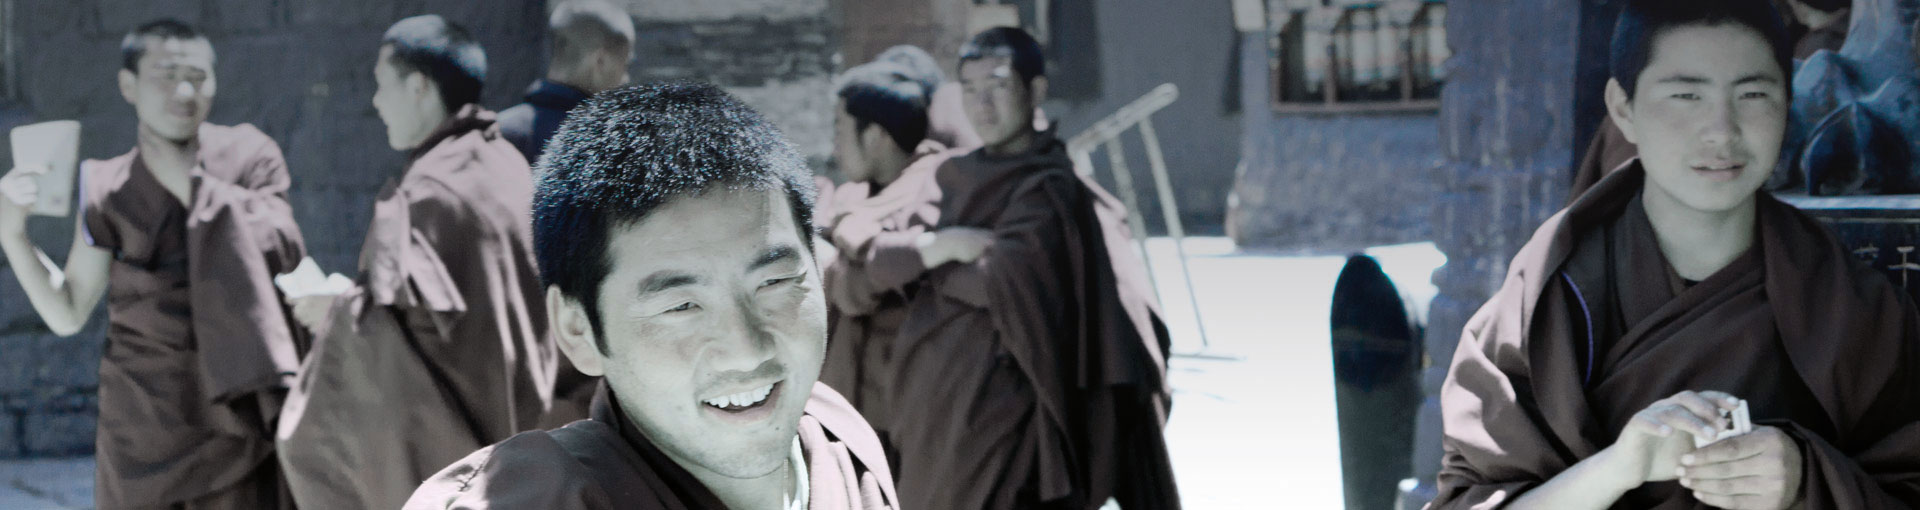 Tibet smile monk element film